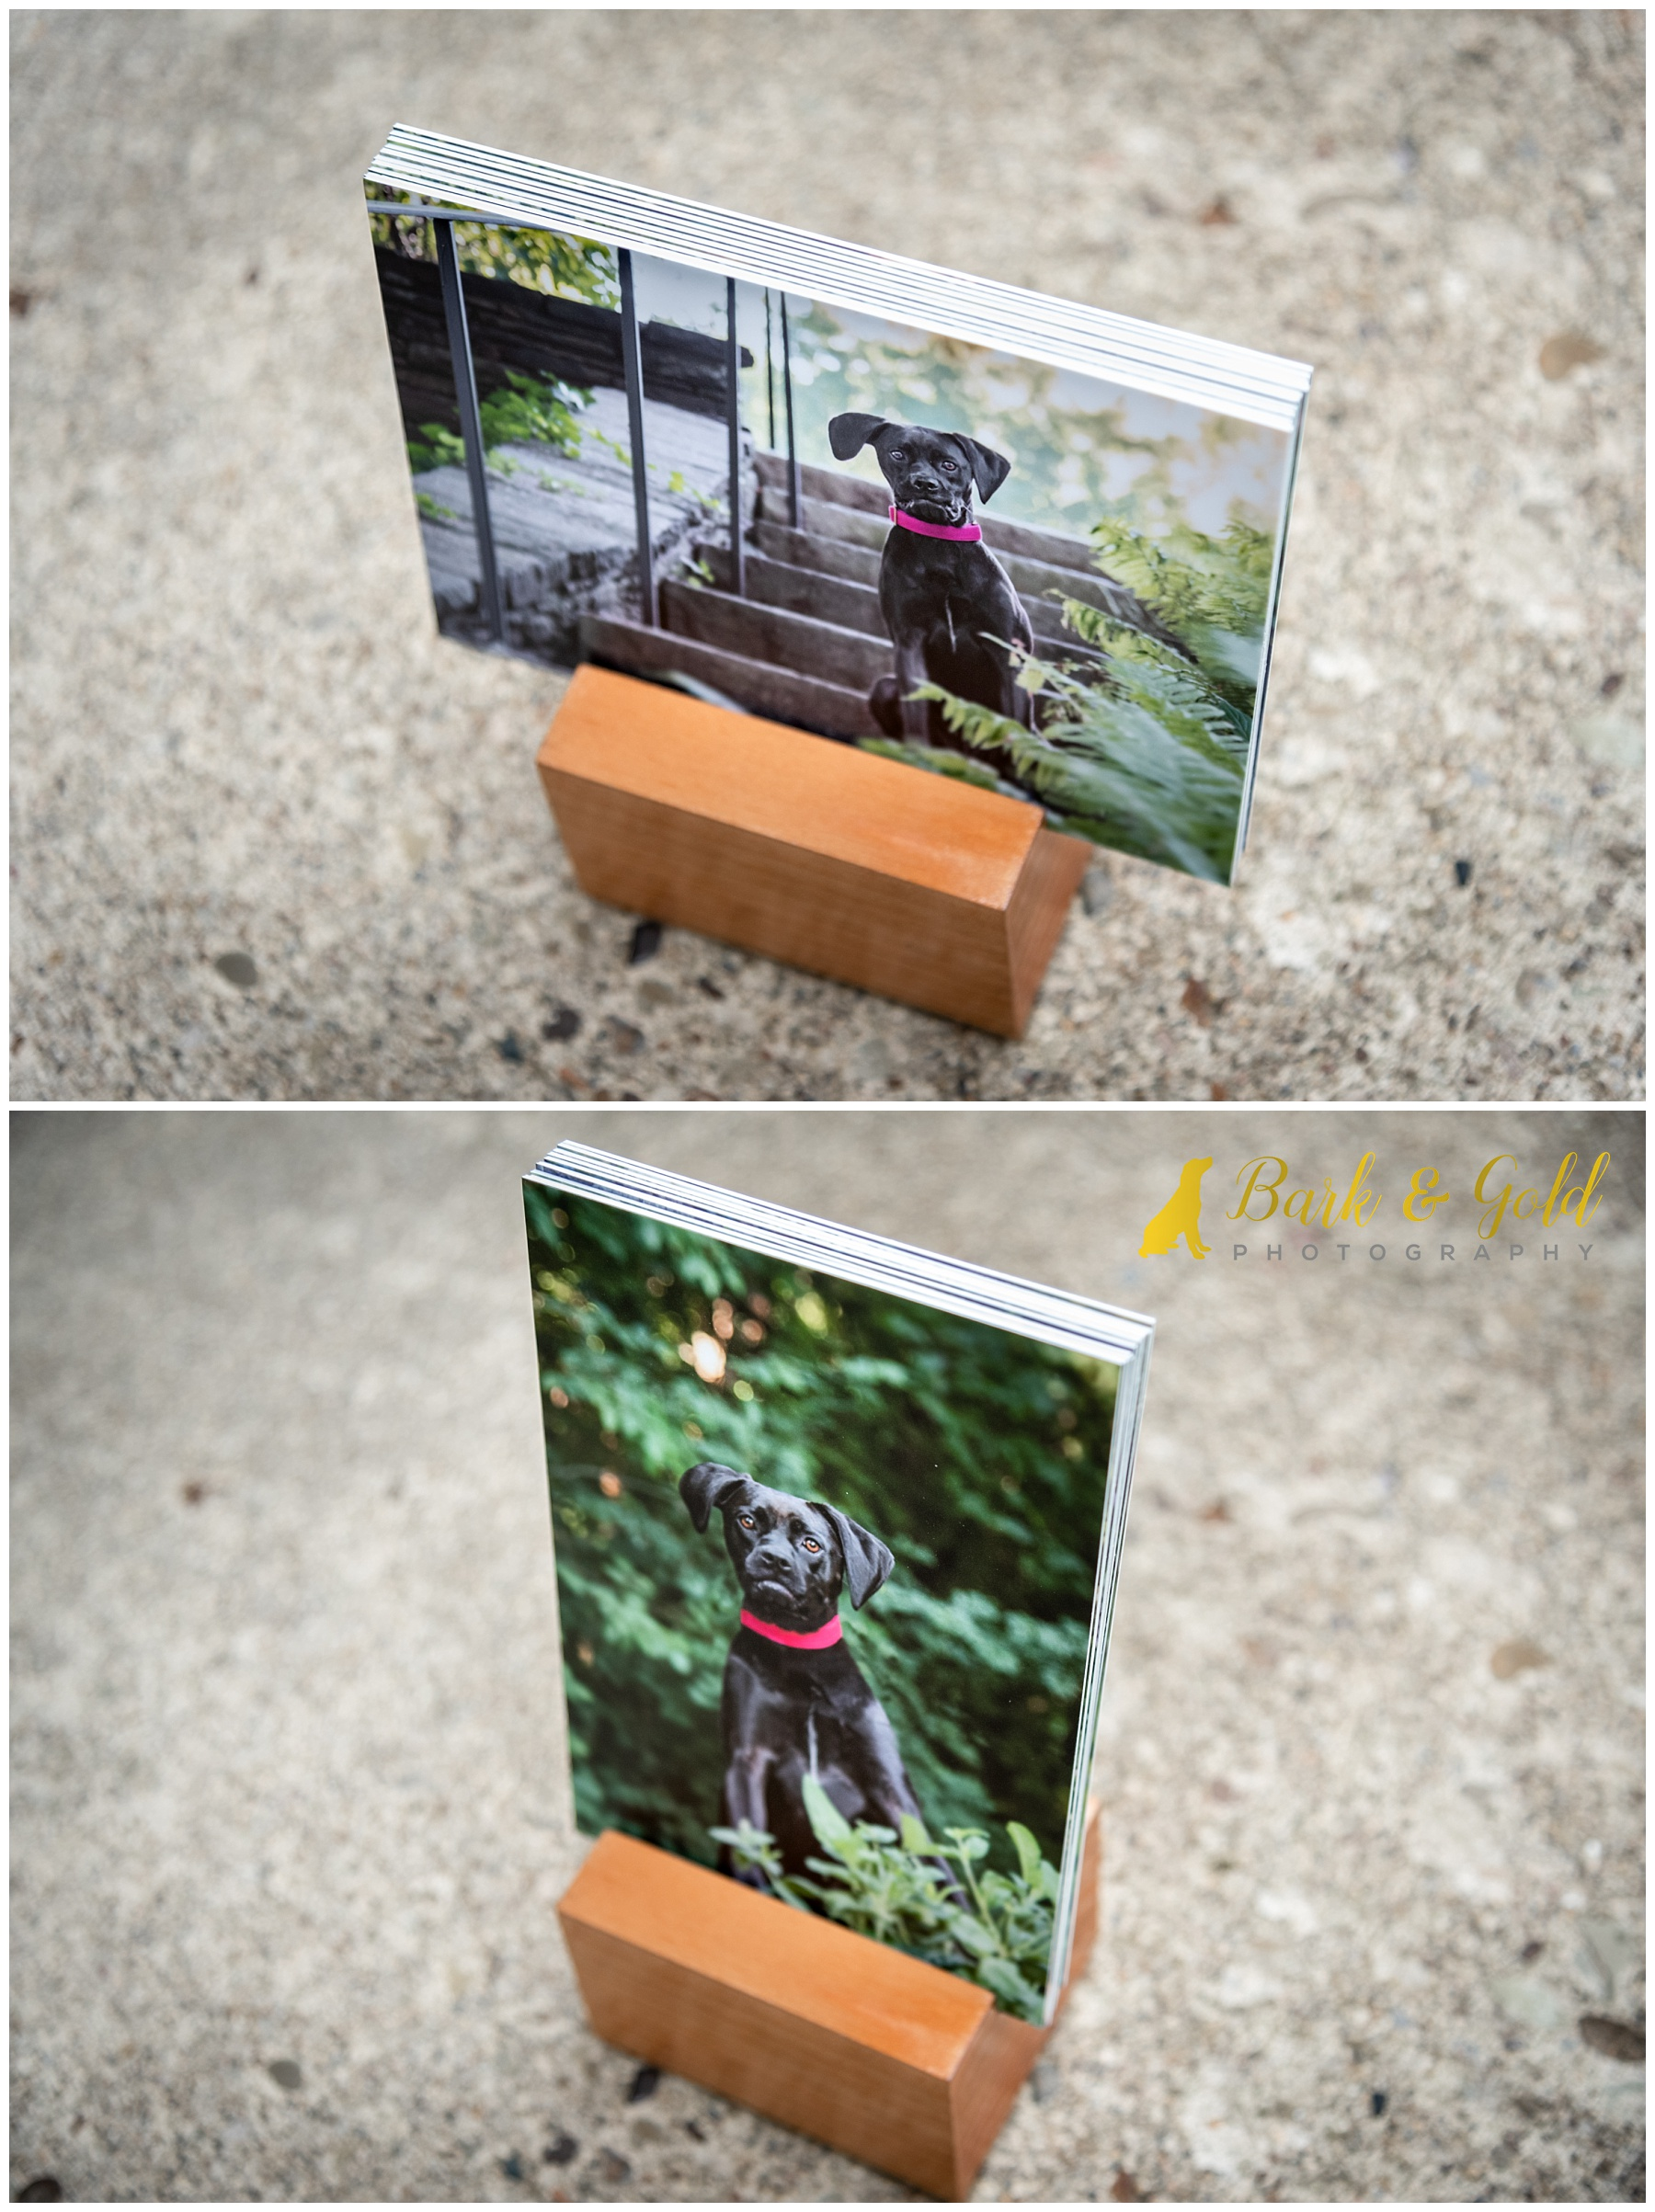 album block with photos of black dog in natural wood block